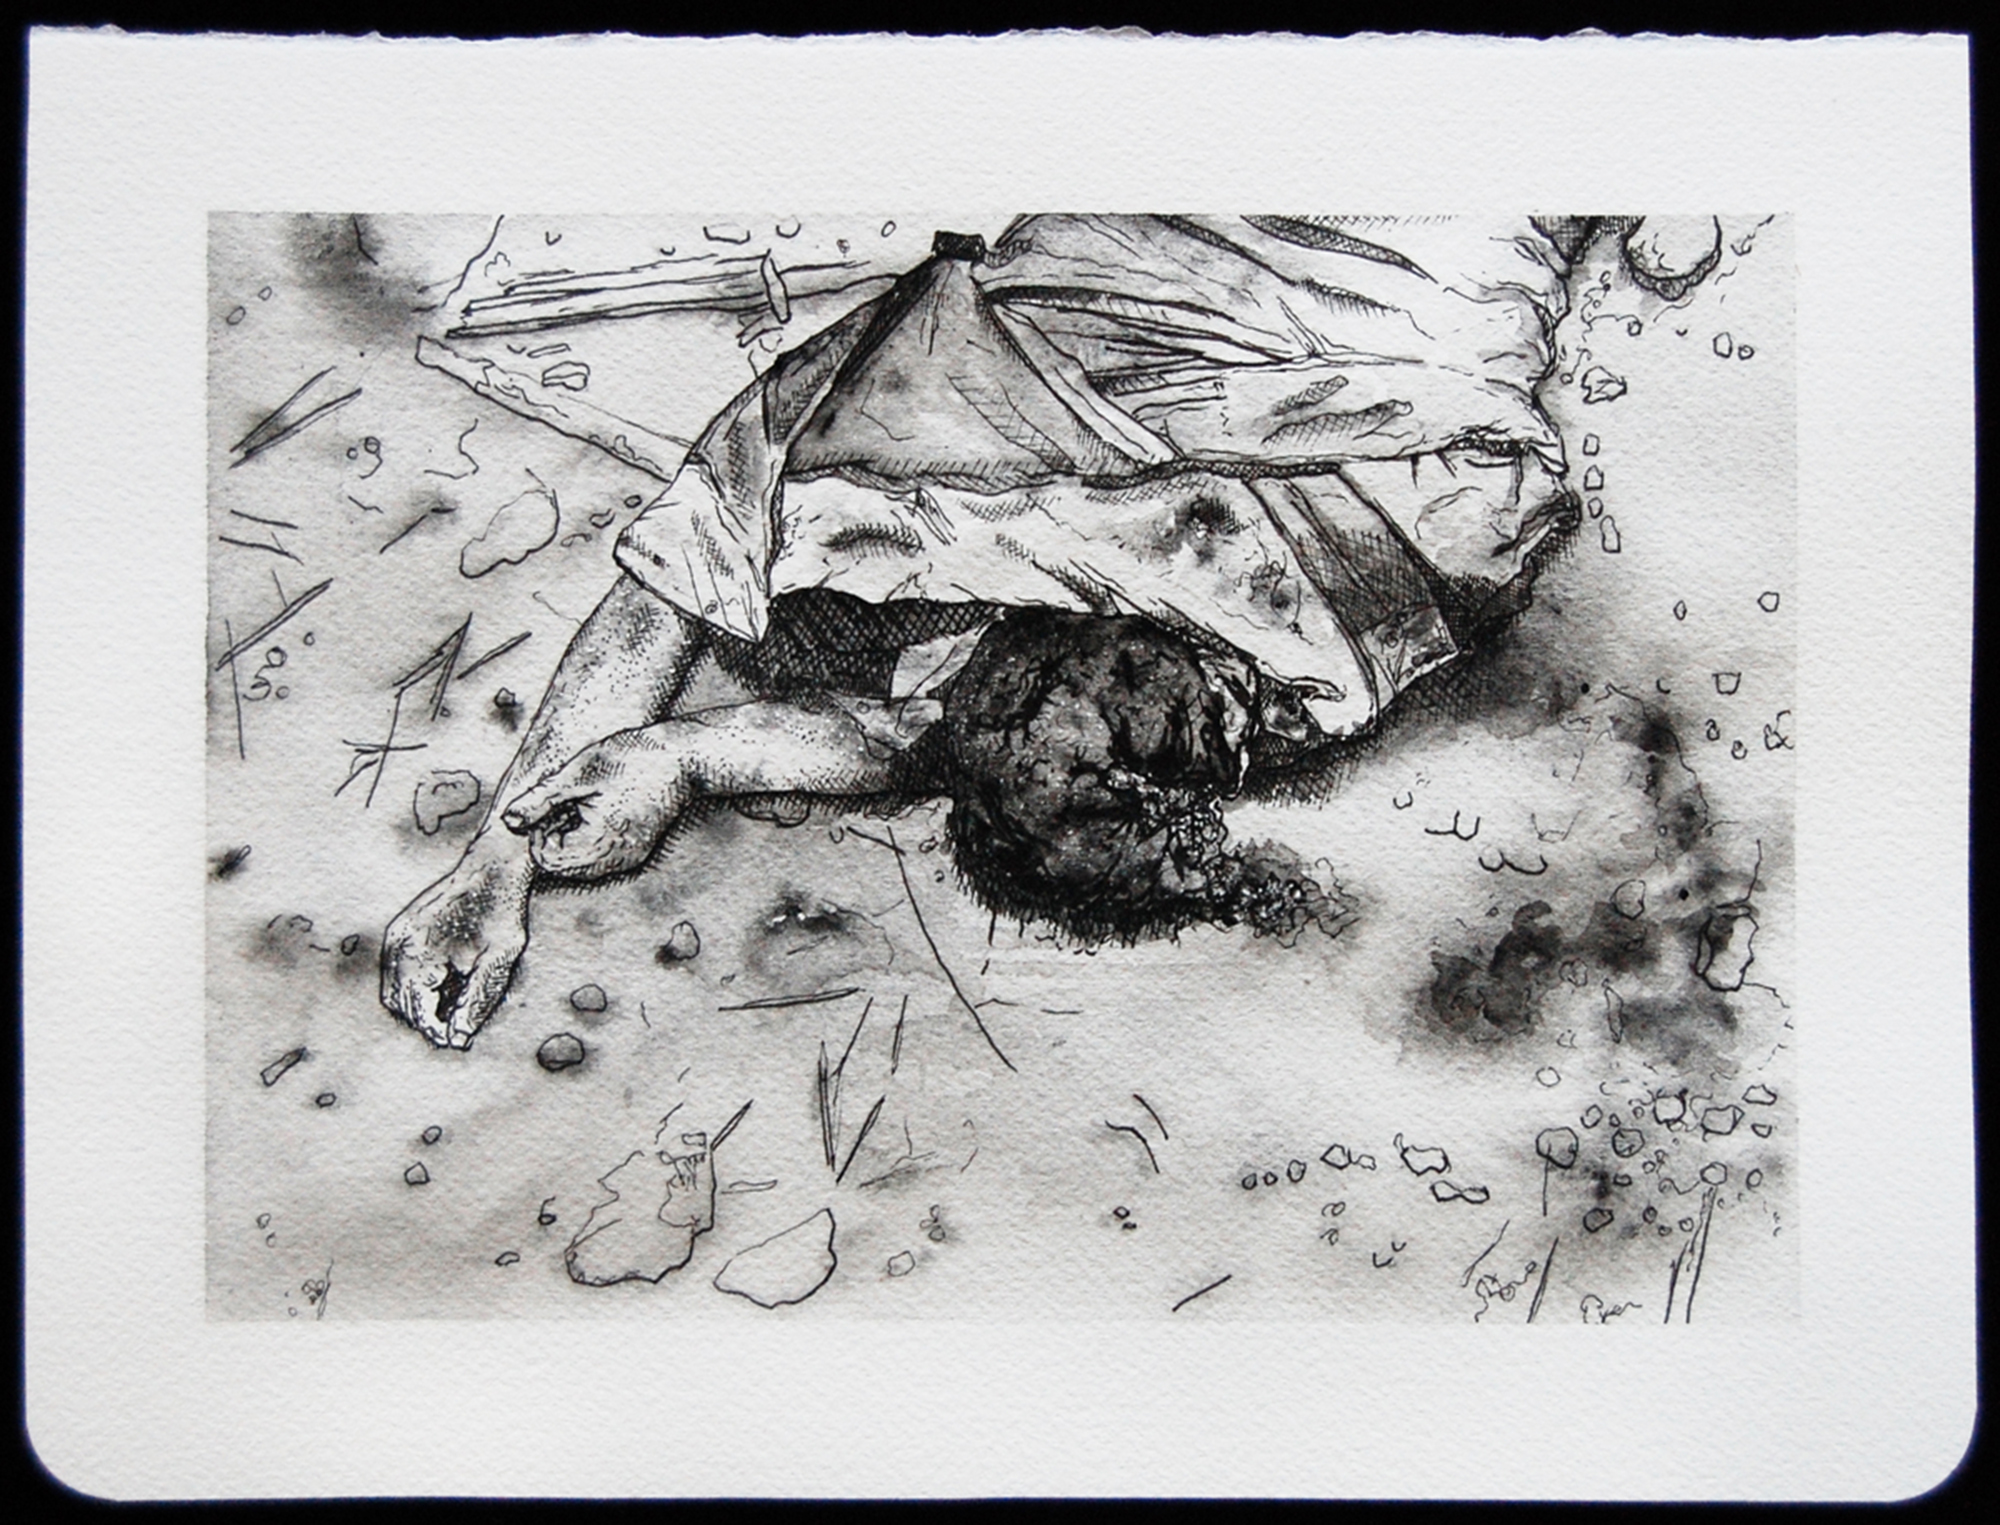 DEATH_109.jpg,2010  |  8.25 x 11 inches  |  archival ink and gouache on paper